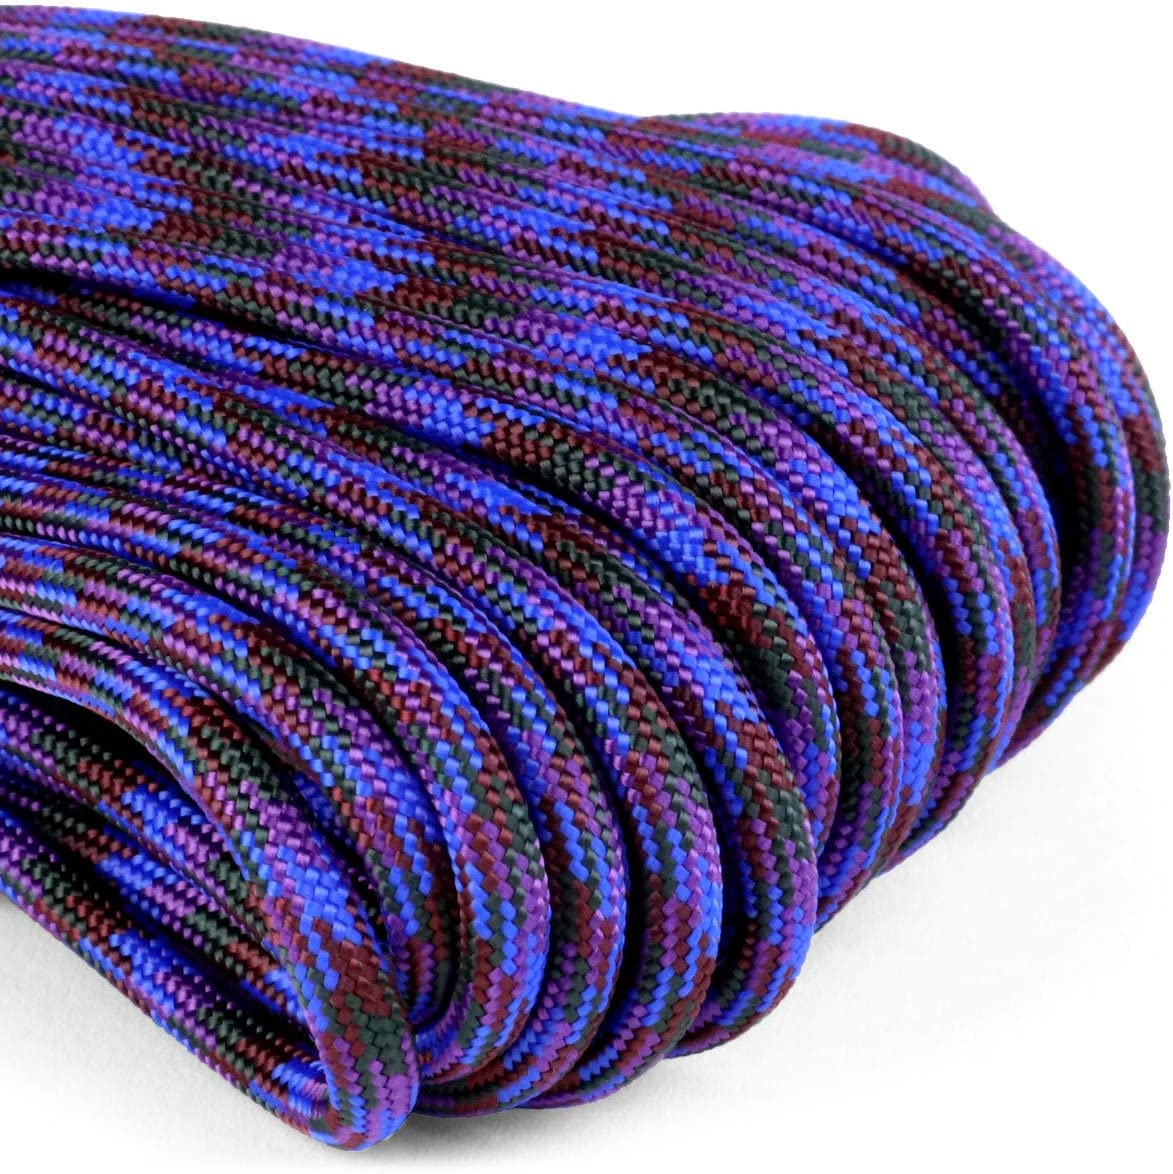 Keychain Bracelets Lanyards Handle Wraps Atwood Rope MFG 550 Paracord 100 Feet 7-Strand Core Nylon Parachute Cord Outside Survival Gear Made in USA